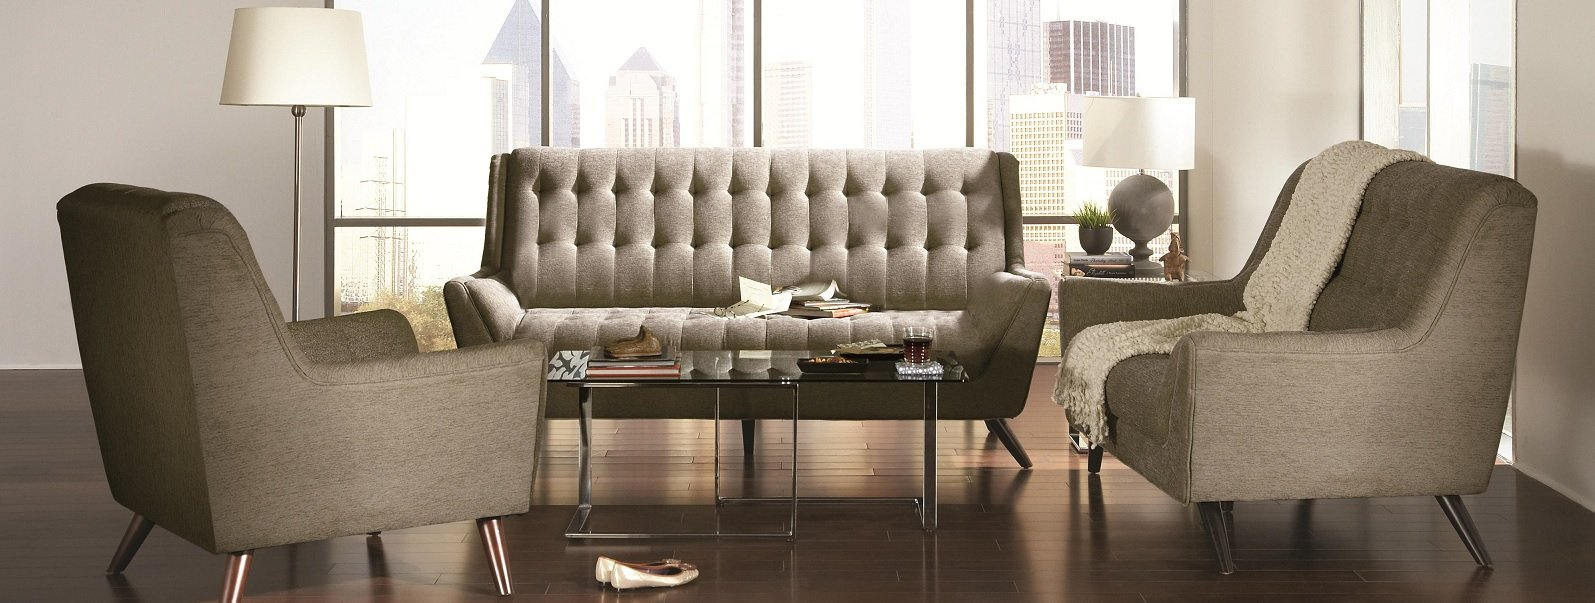 Low Cost Furniture Stores In Chicago Area Affordable Portables